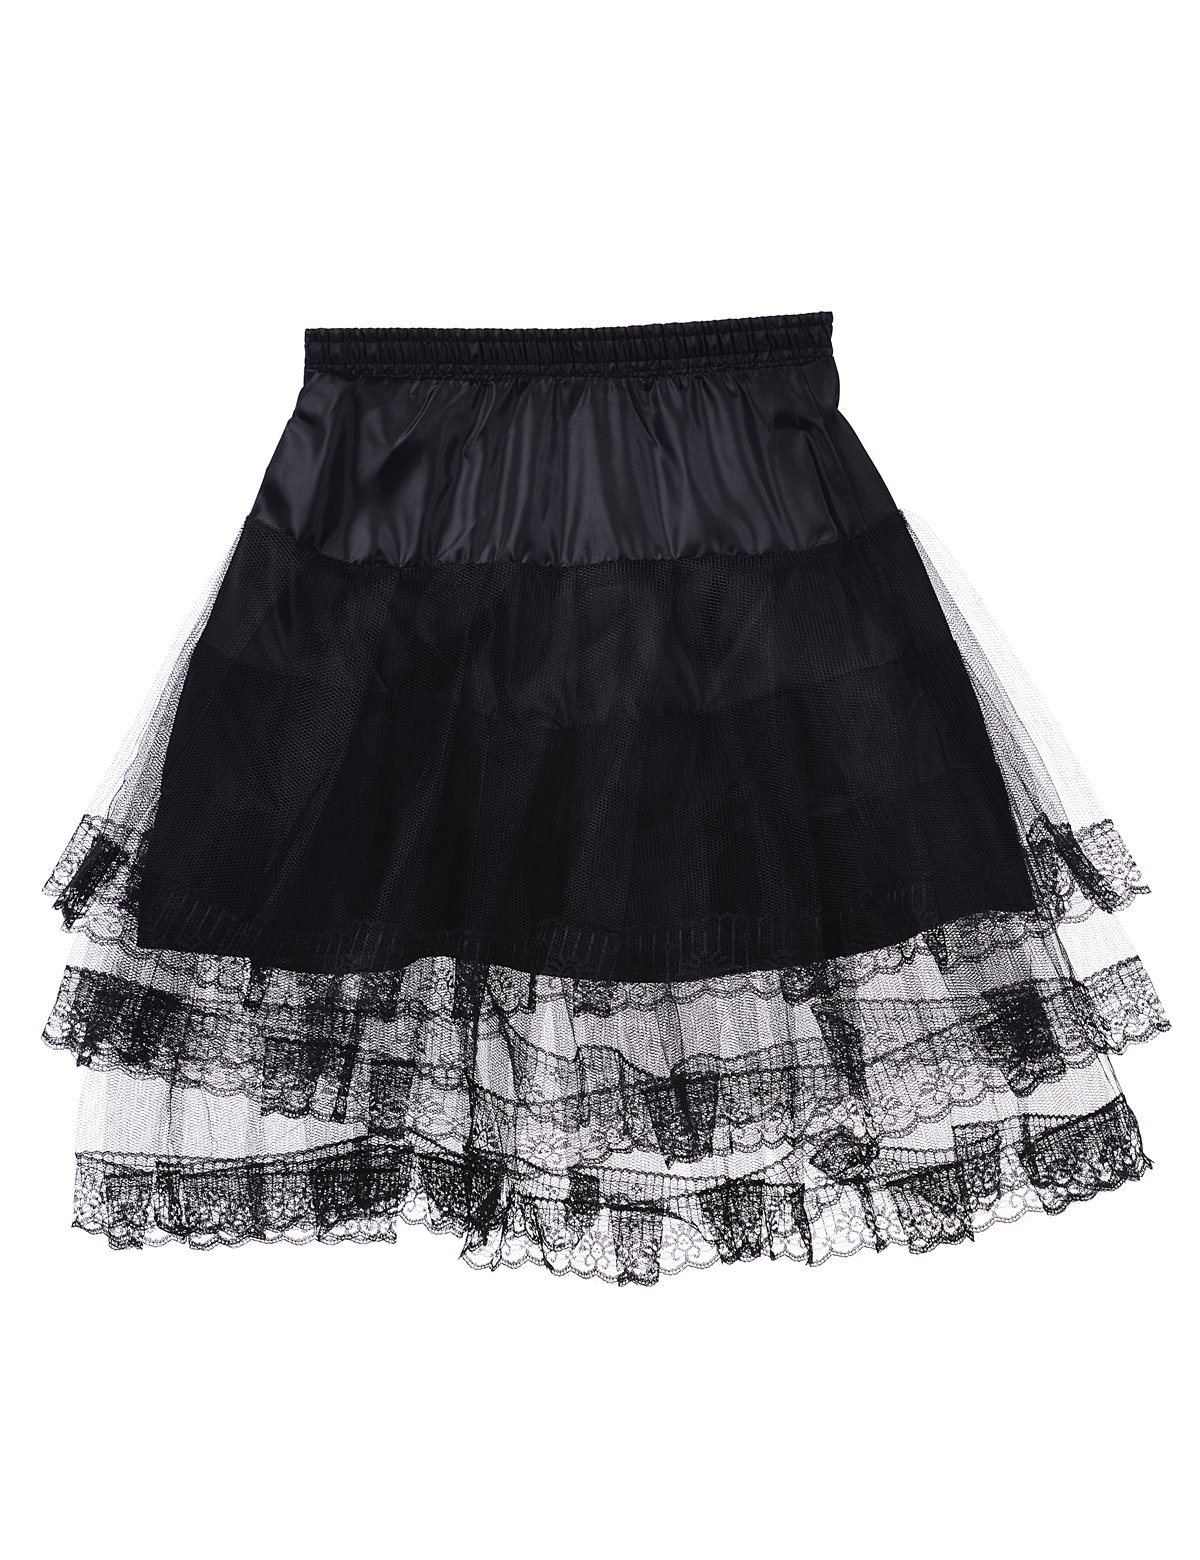 Remedios Kids Mini White Petticoat Flower Girl Wedding Underskirt Cocktail Dress Crinoline Slip Black by Remedios